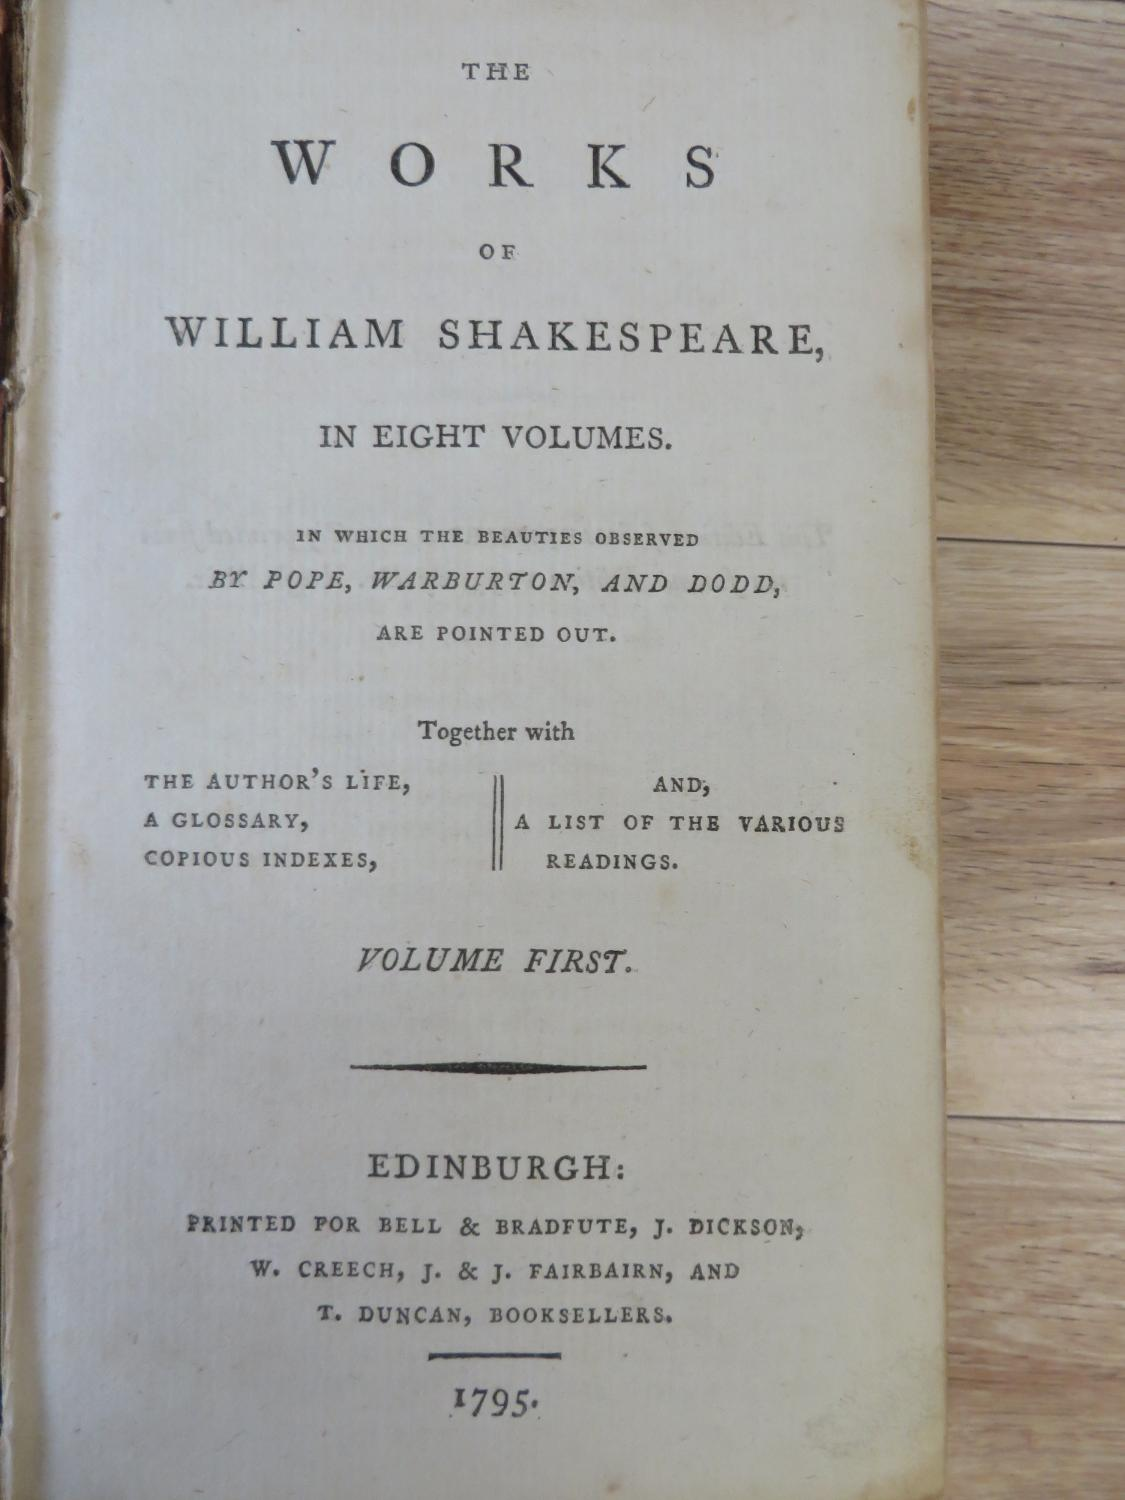 the life and works of william shakespeare This video provides a crash course introduction to william shakespeare's life,  plays, and poetry from 'two gentlemen of verona' to 'the tempest', we'll give.